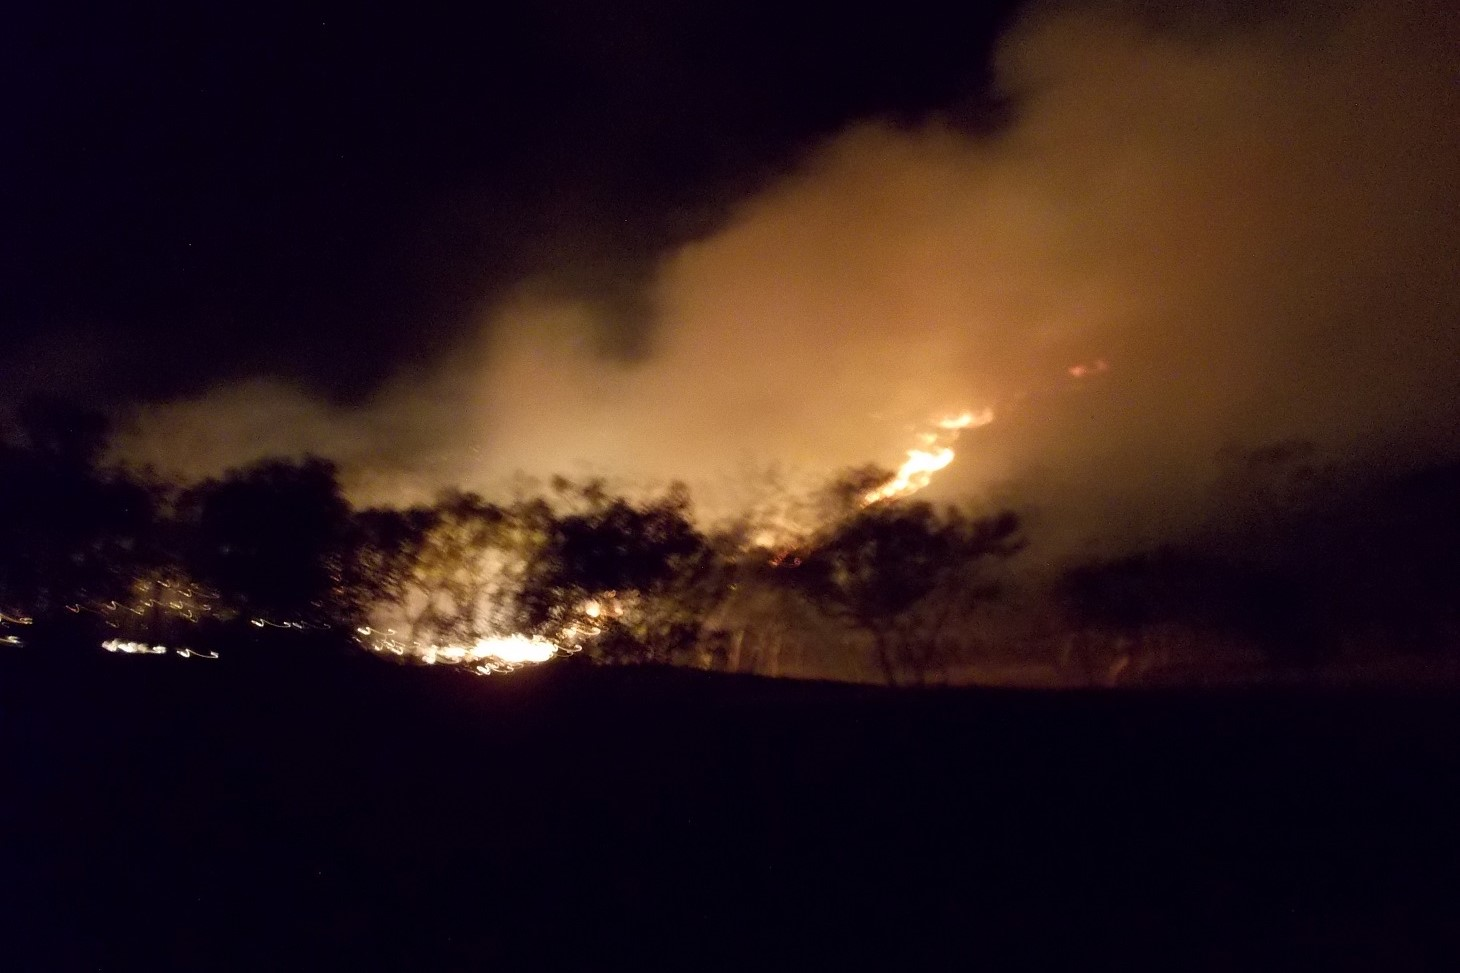 Fire fronts are easier to identify at night